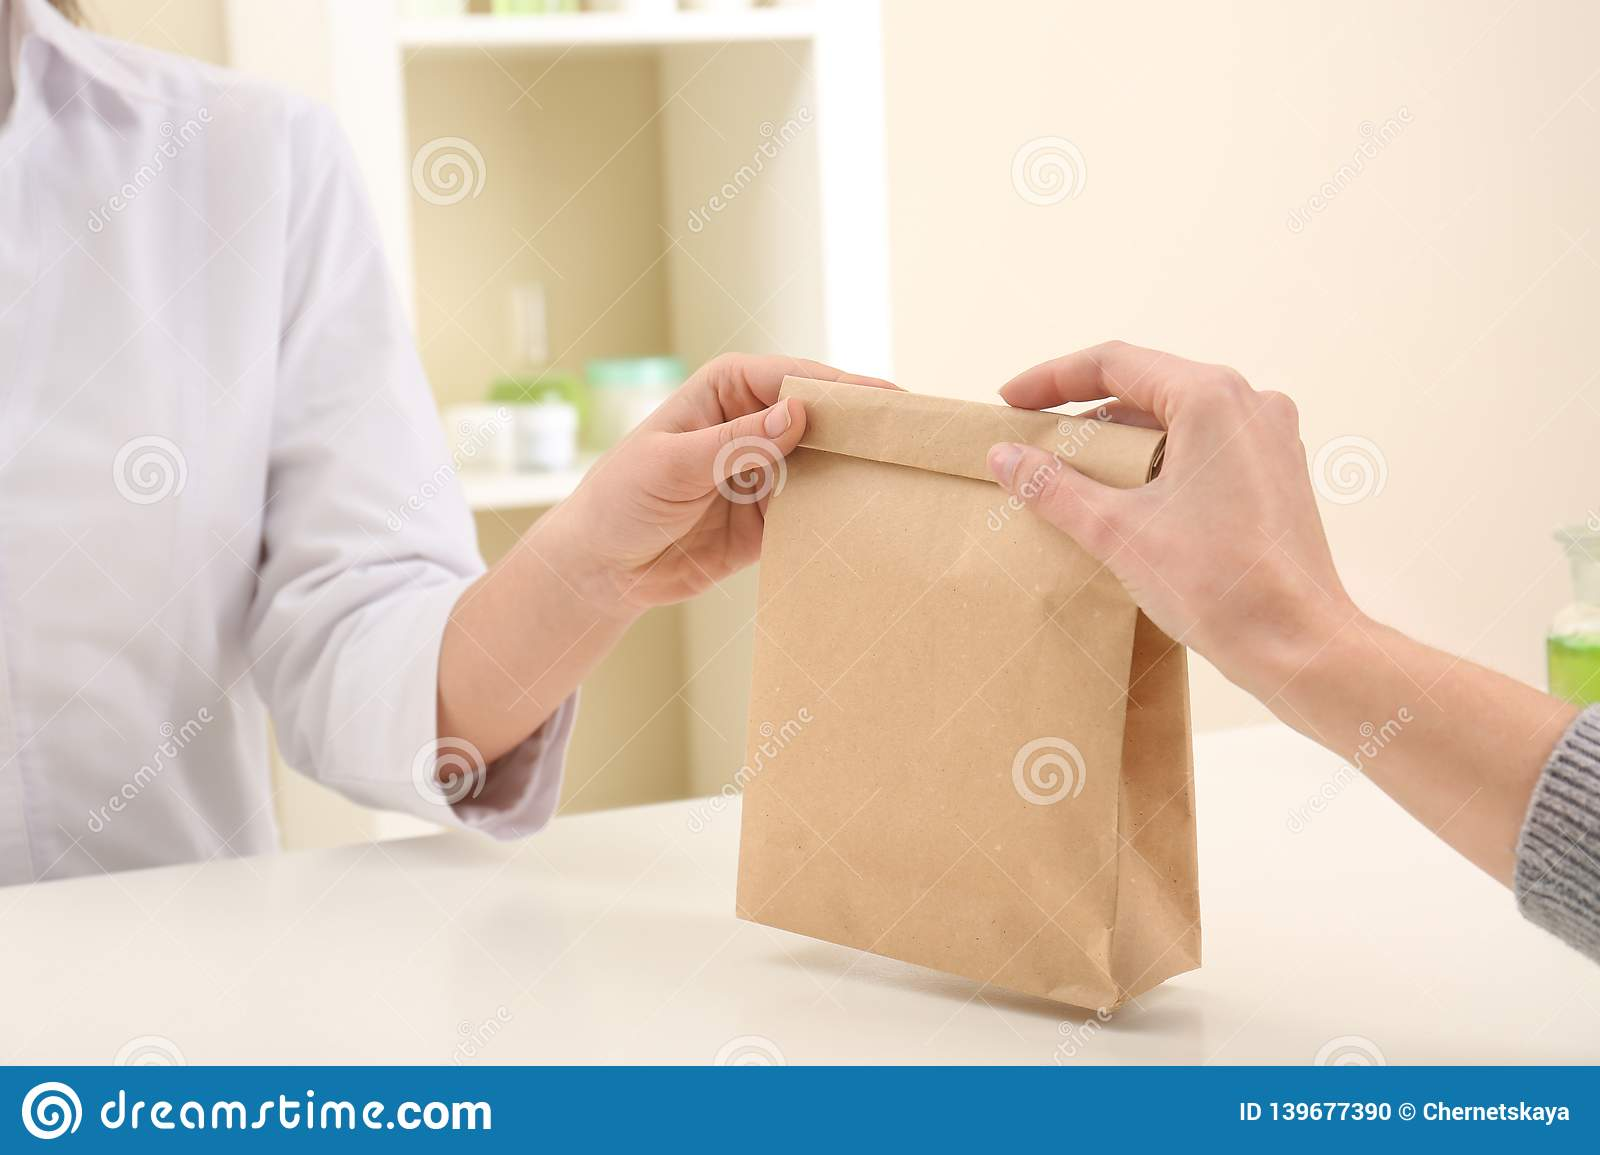 Woman giving paper bag with order to customer in shop, closeup.